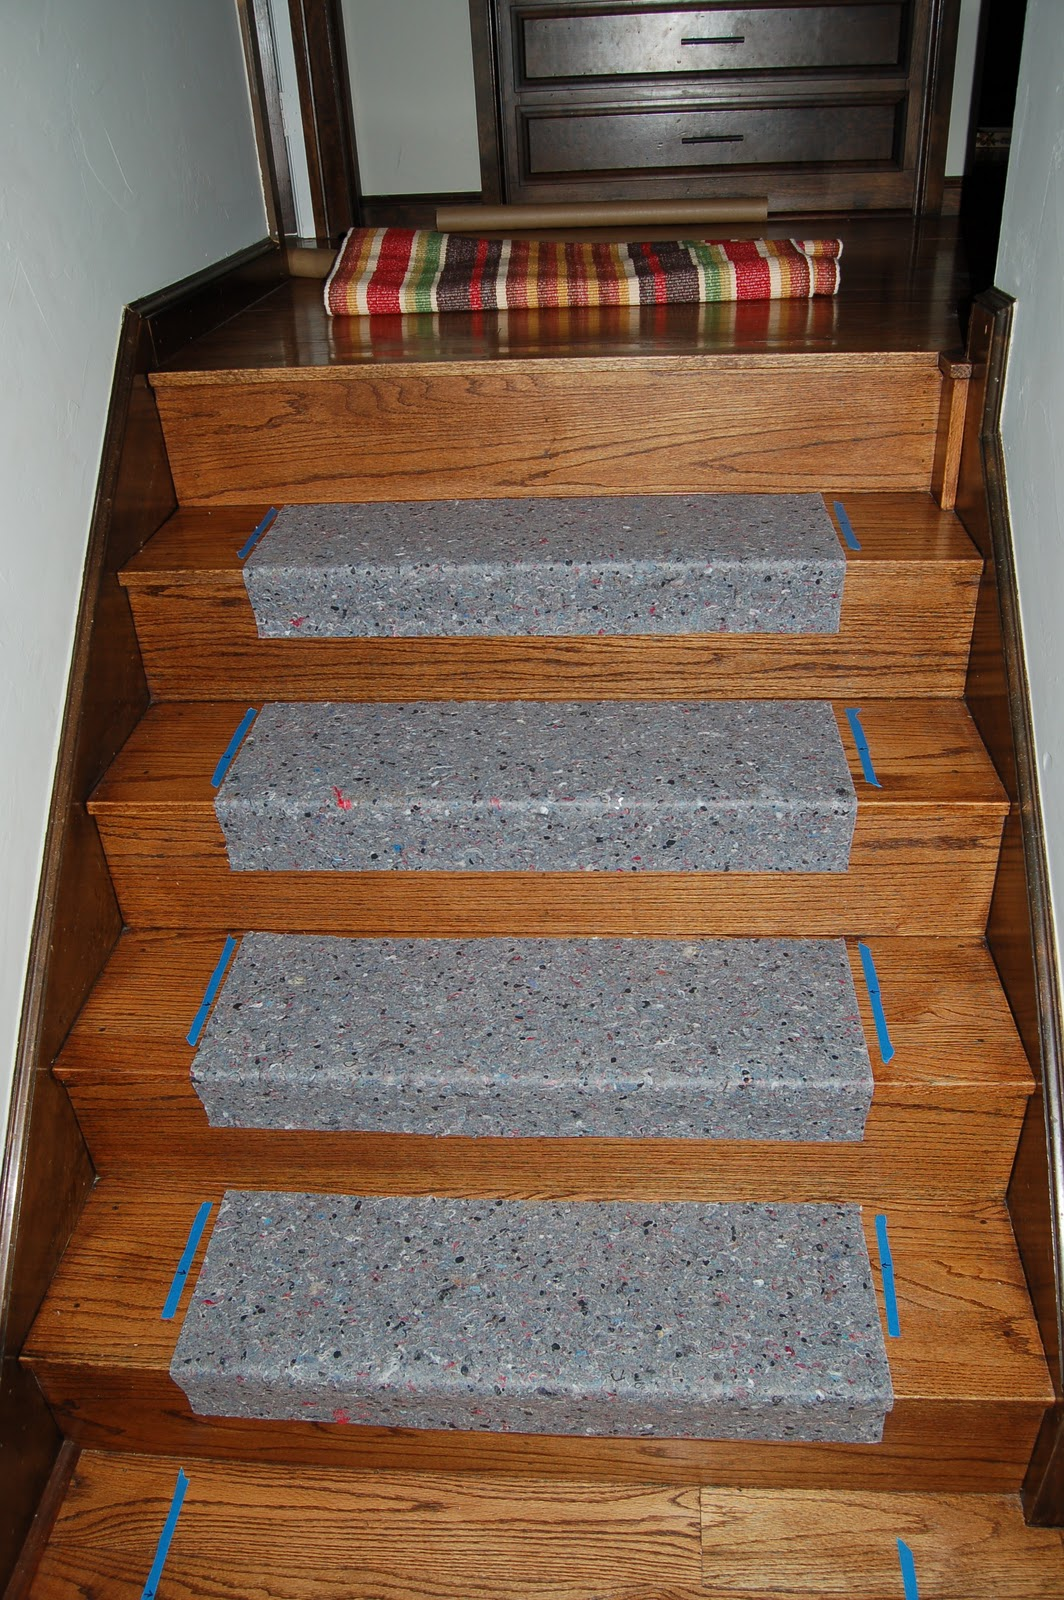 Northwesterly Diy Stair Runner